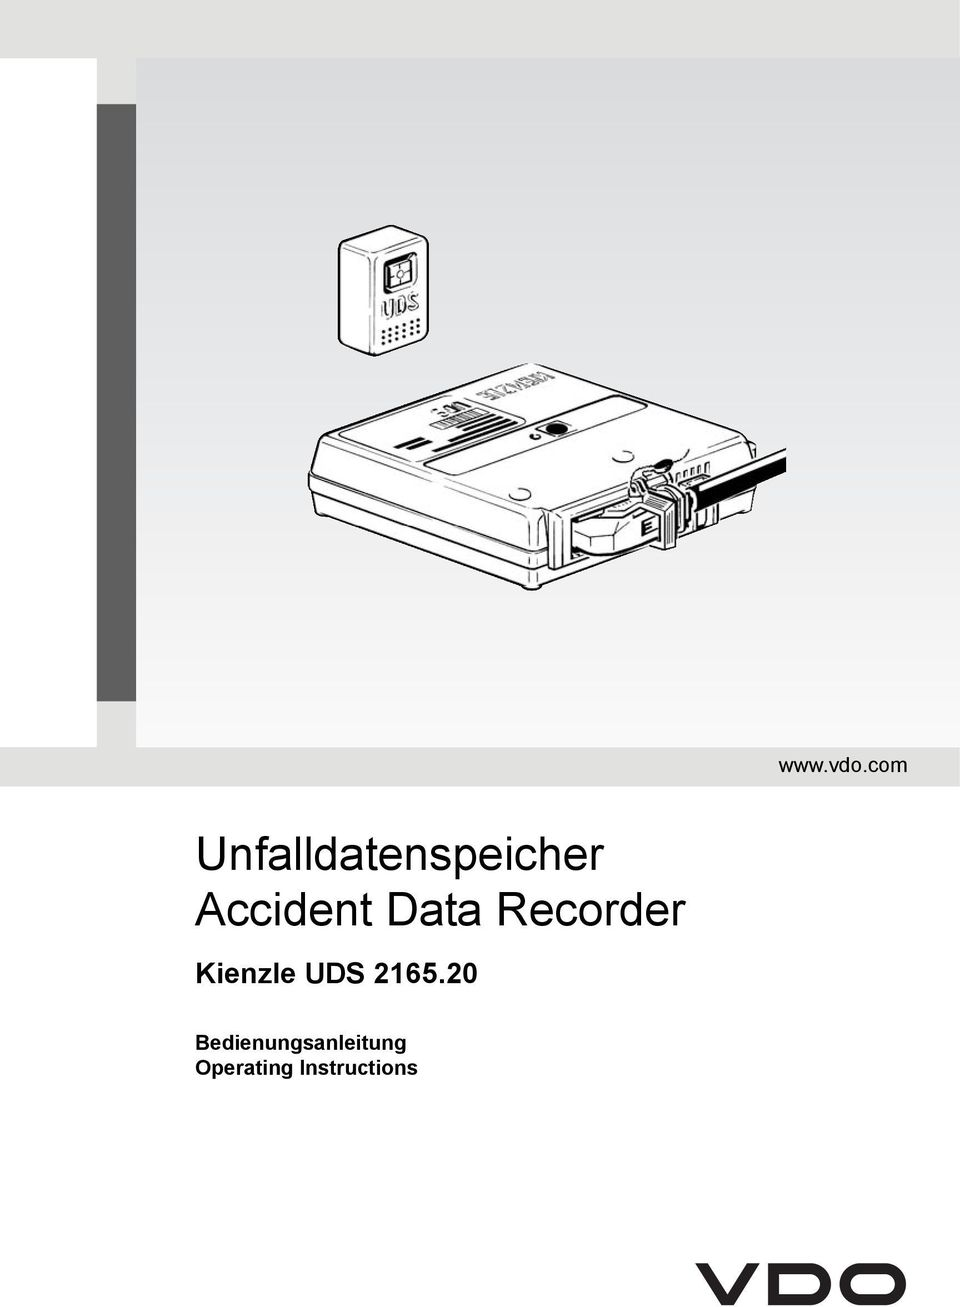 Accident Data Recorder